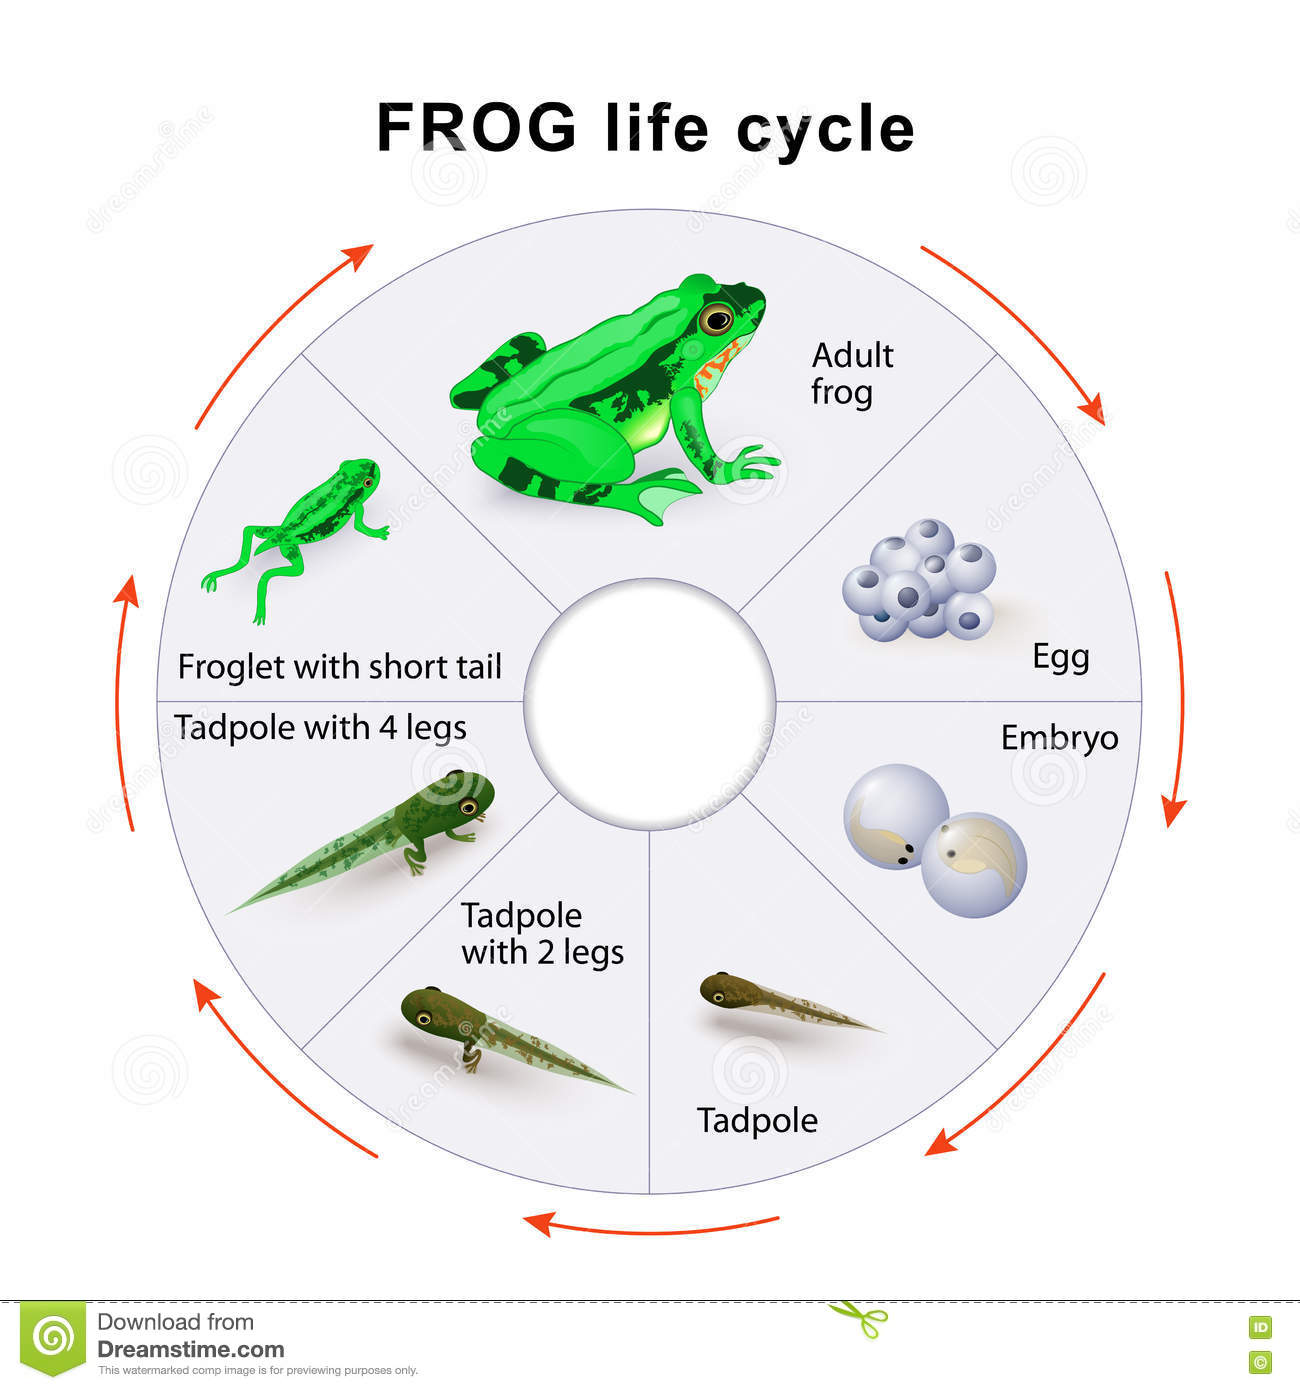 Frog life cycle amphibian metamorphosis stock vector frog life cycle amphibian metamorphosis pooptronica Choice Image